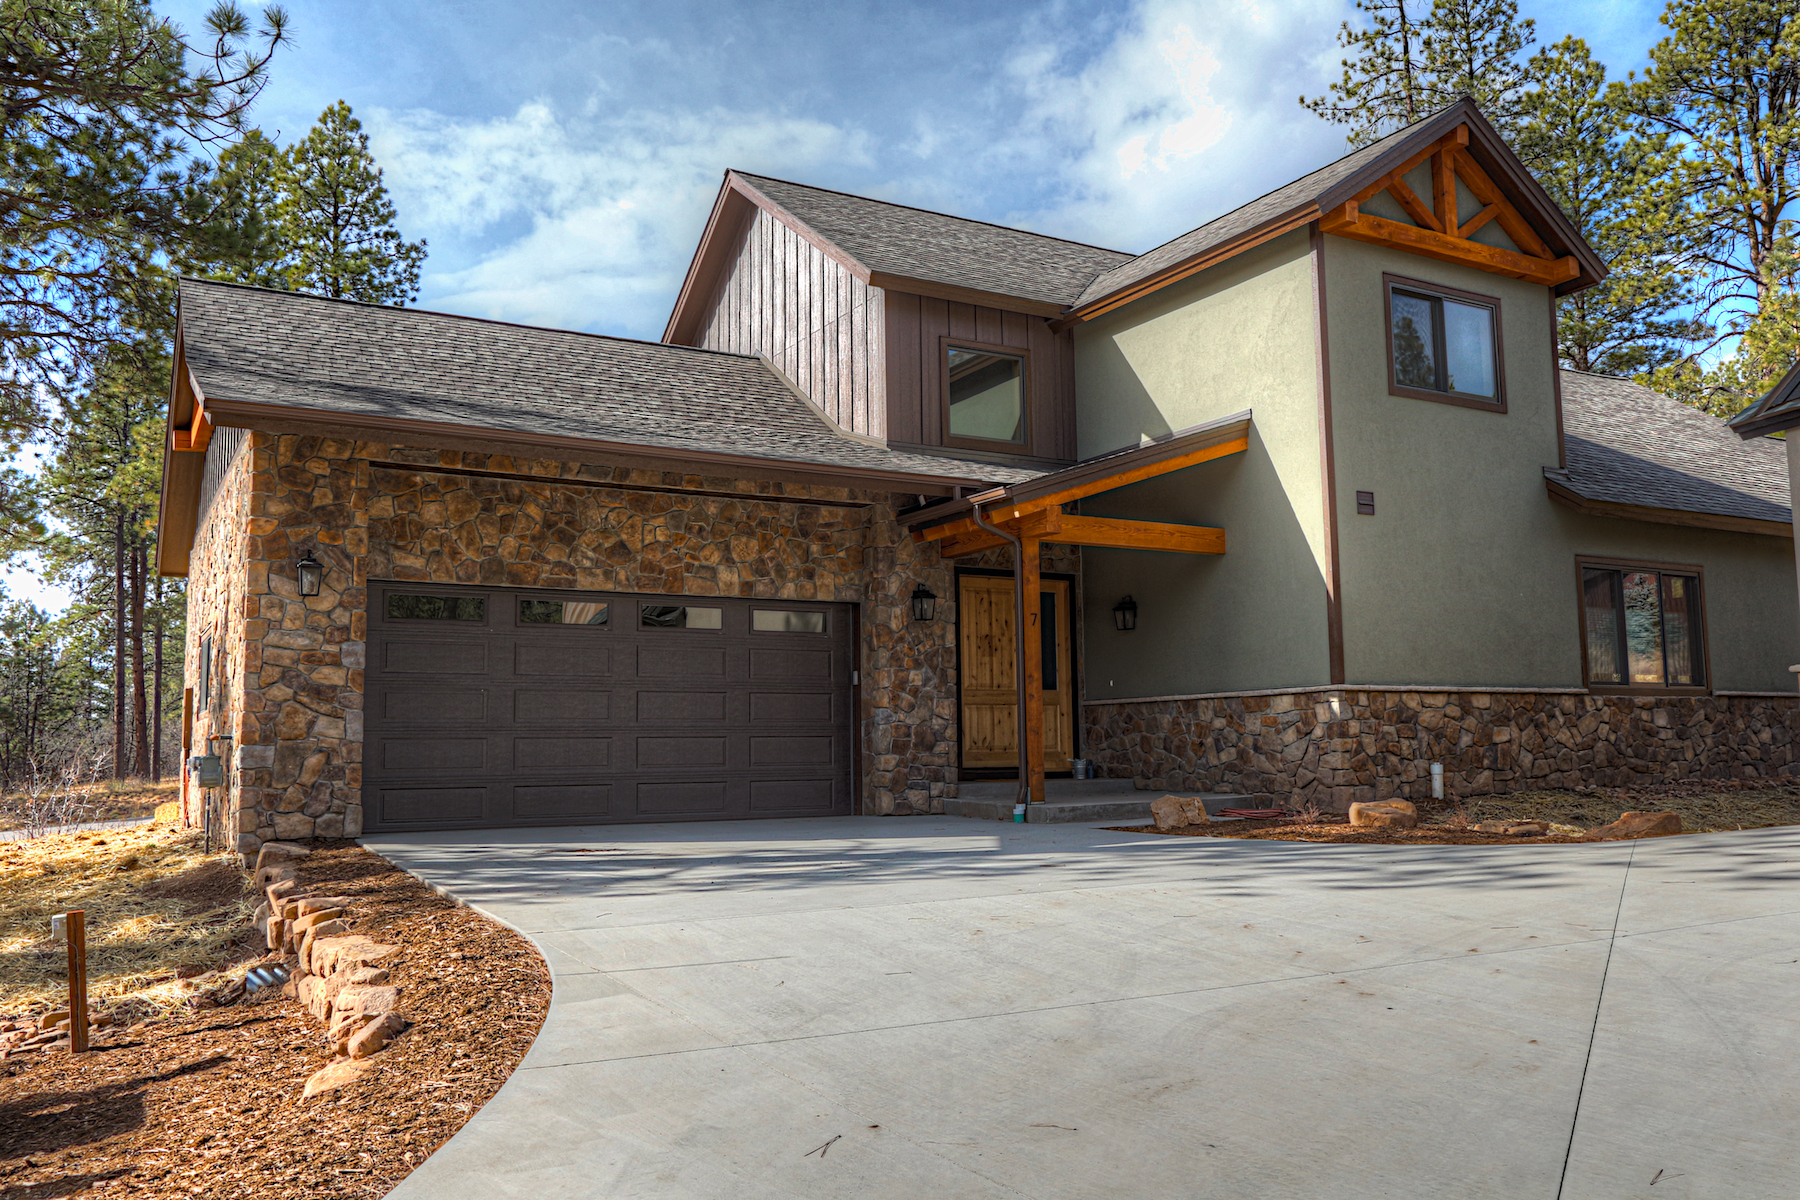 Single Family Home for Sale at 7 Canyon Pines Place 7 Canyon Pines Place Durango, Colorado 81301 United States